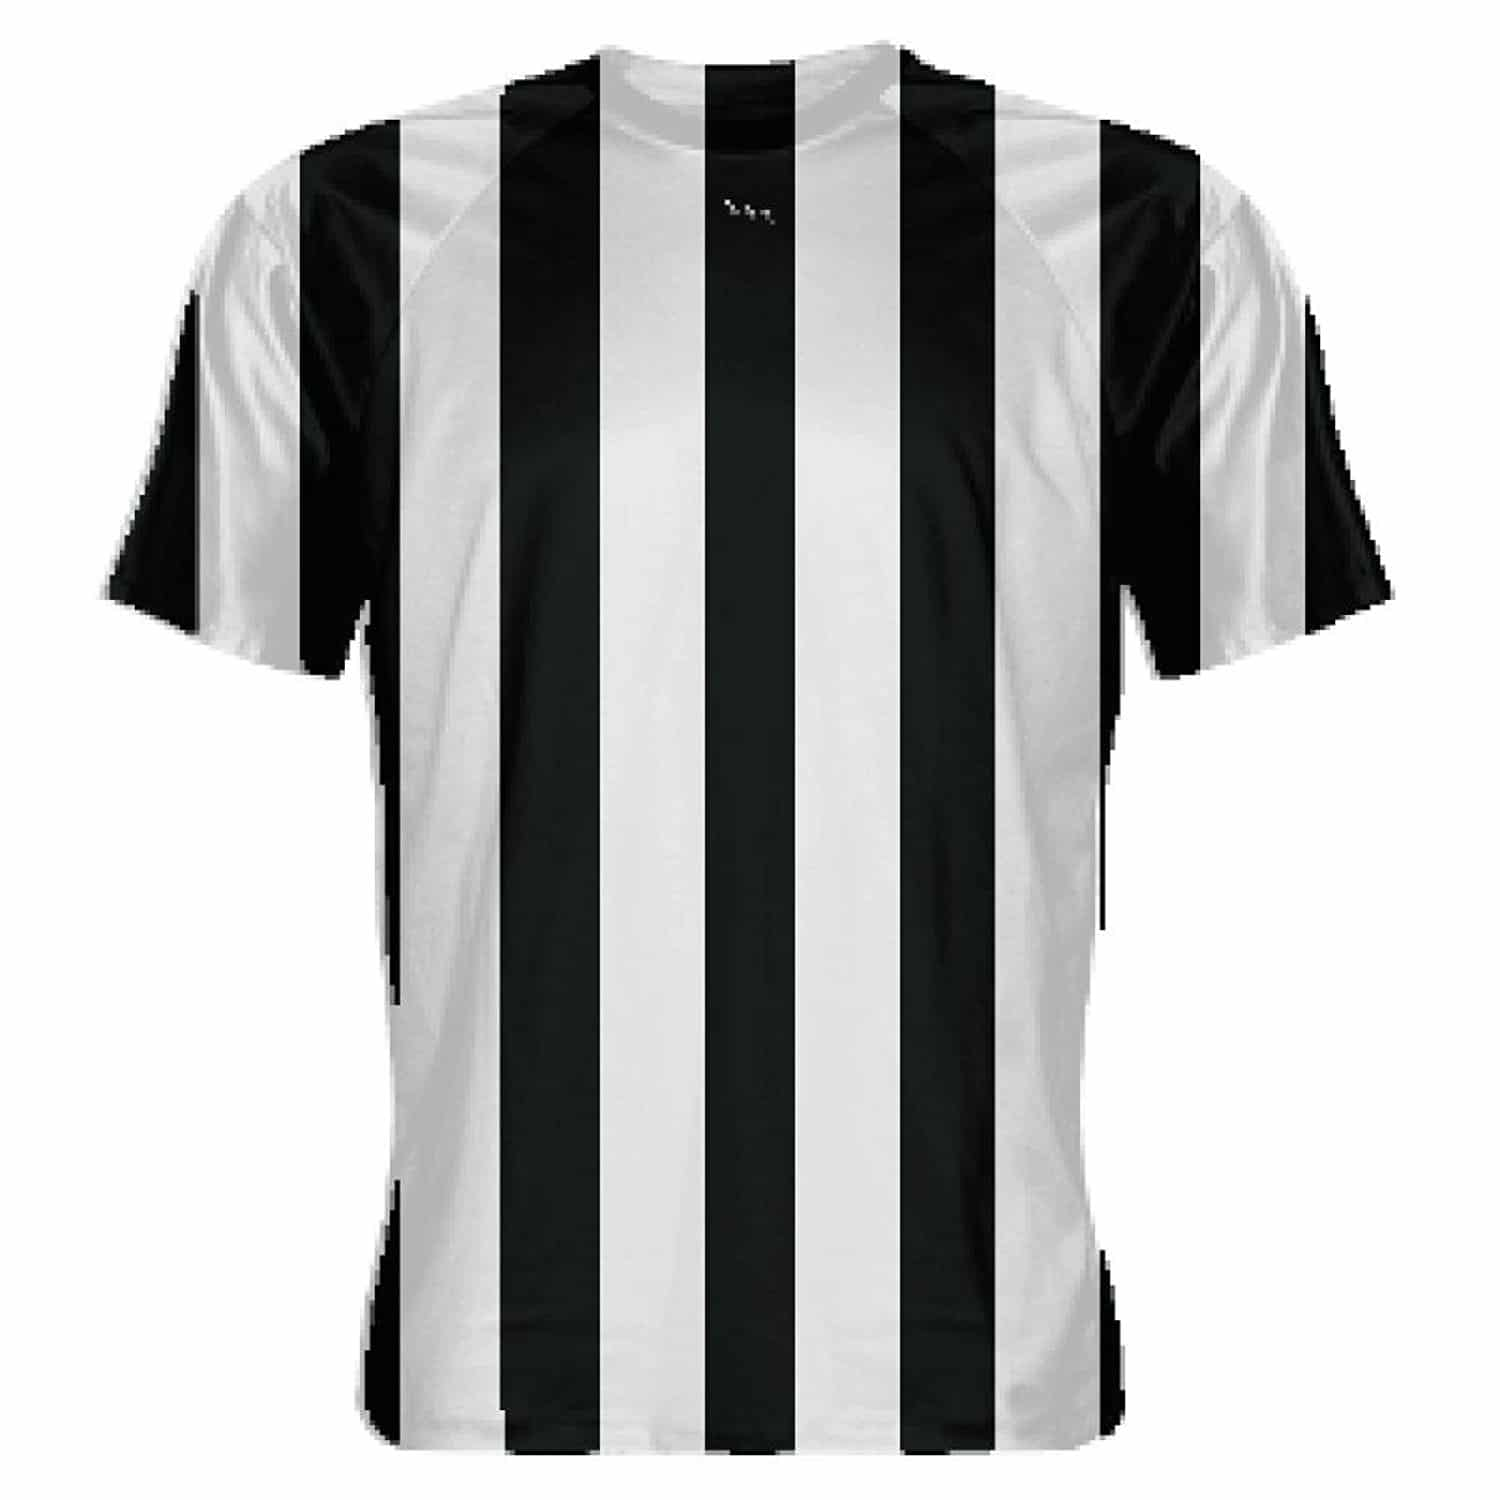 Variation-689408837526-of-LightningWear-Black-and-White-Striped-Soccer-Jerseys-B078NJTCRX-256364